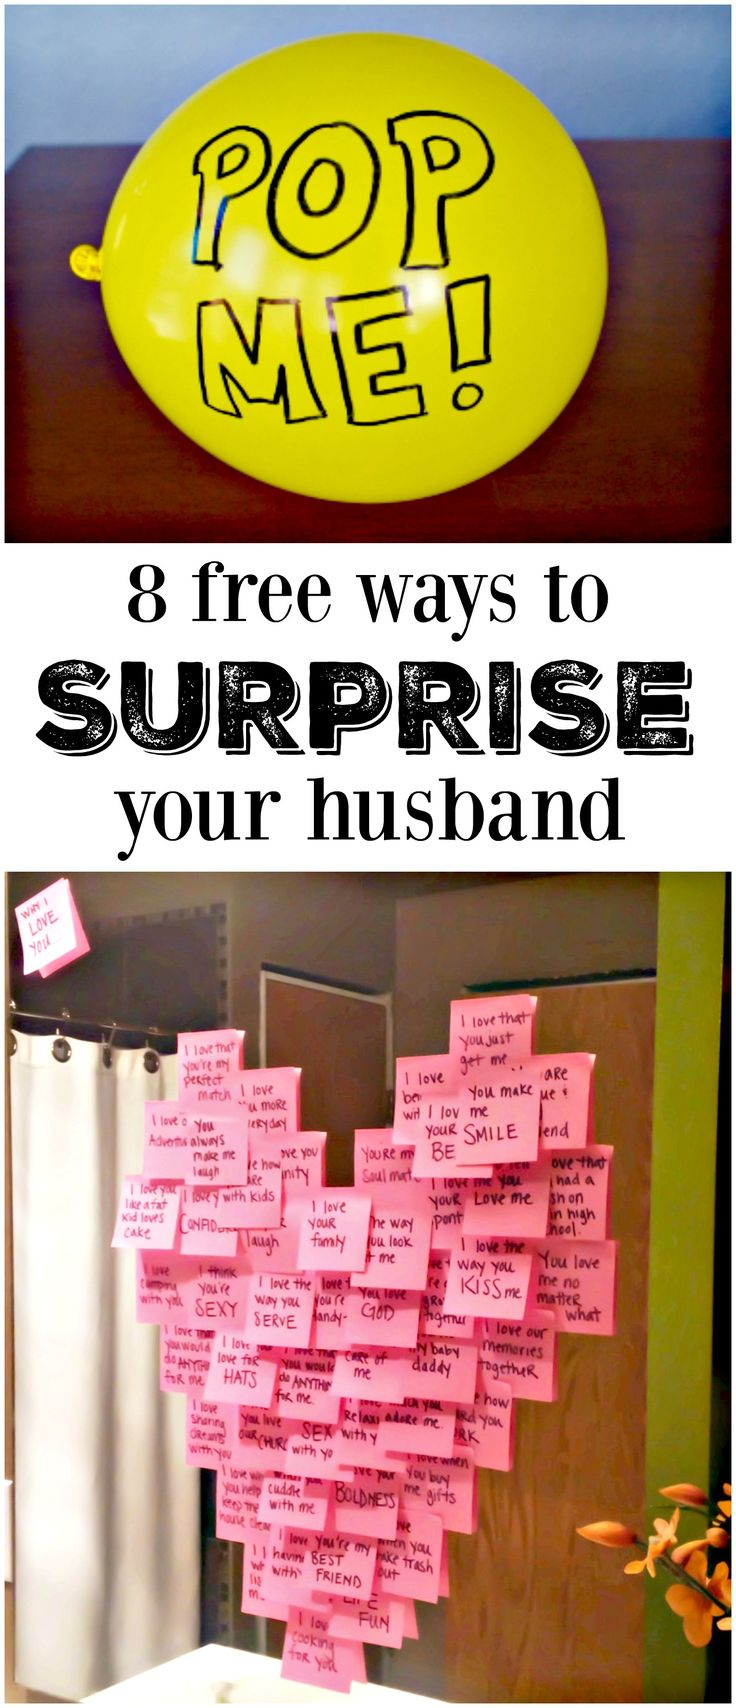 Best 25+ Valentines ideas for boyfriend ideas on Pinterest ...